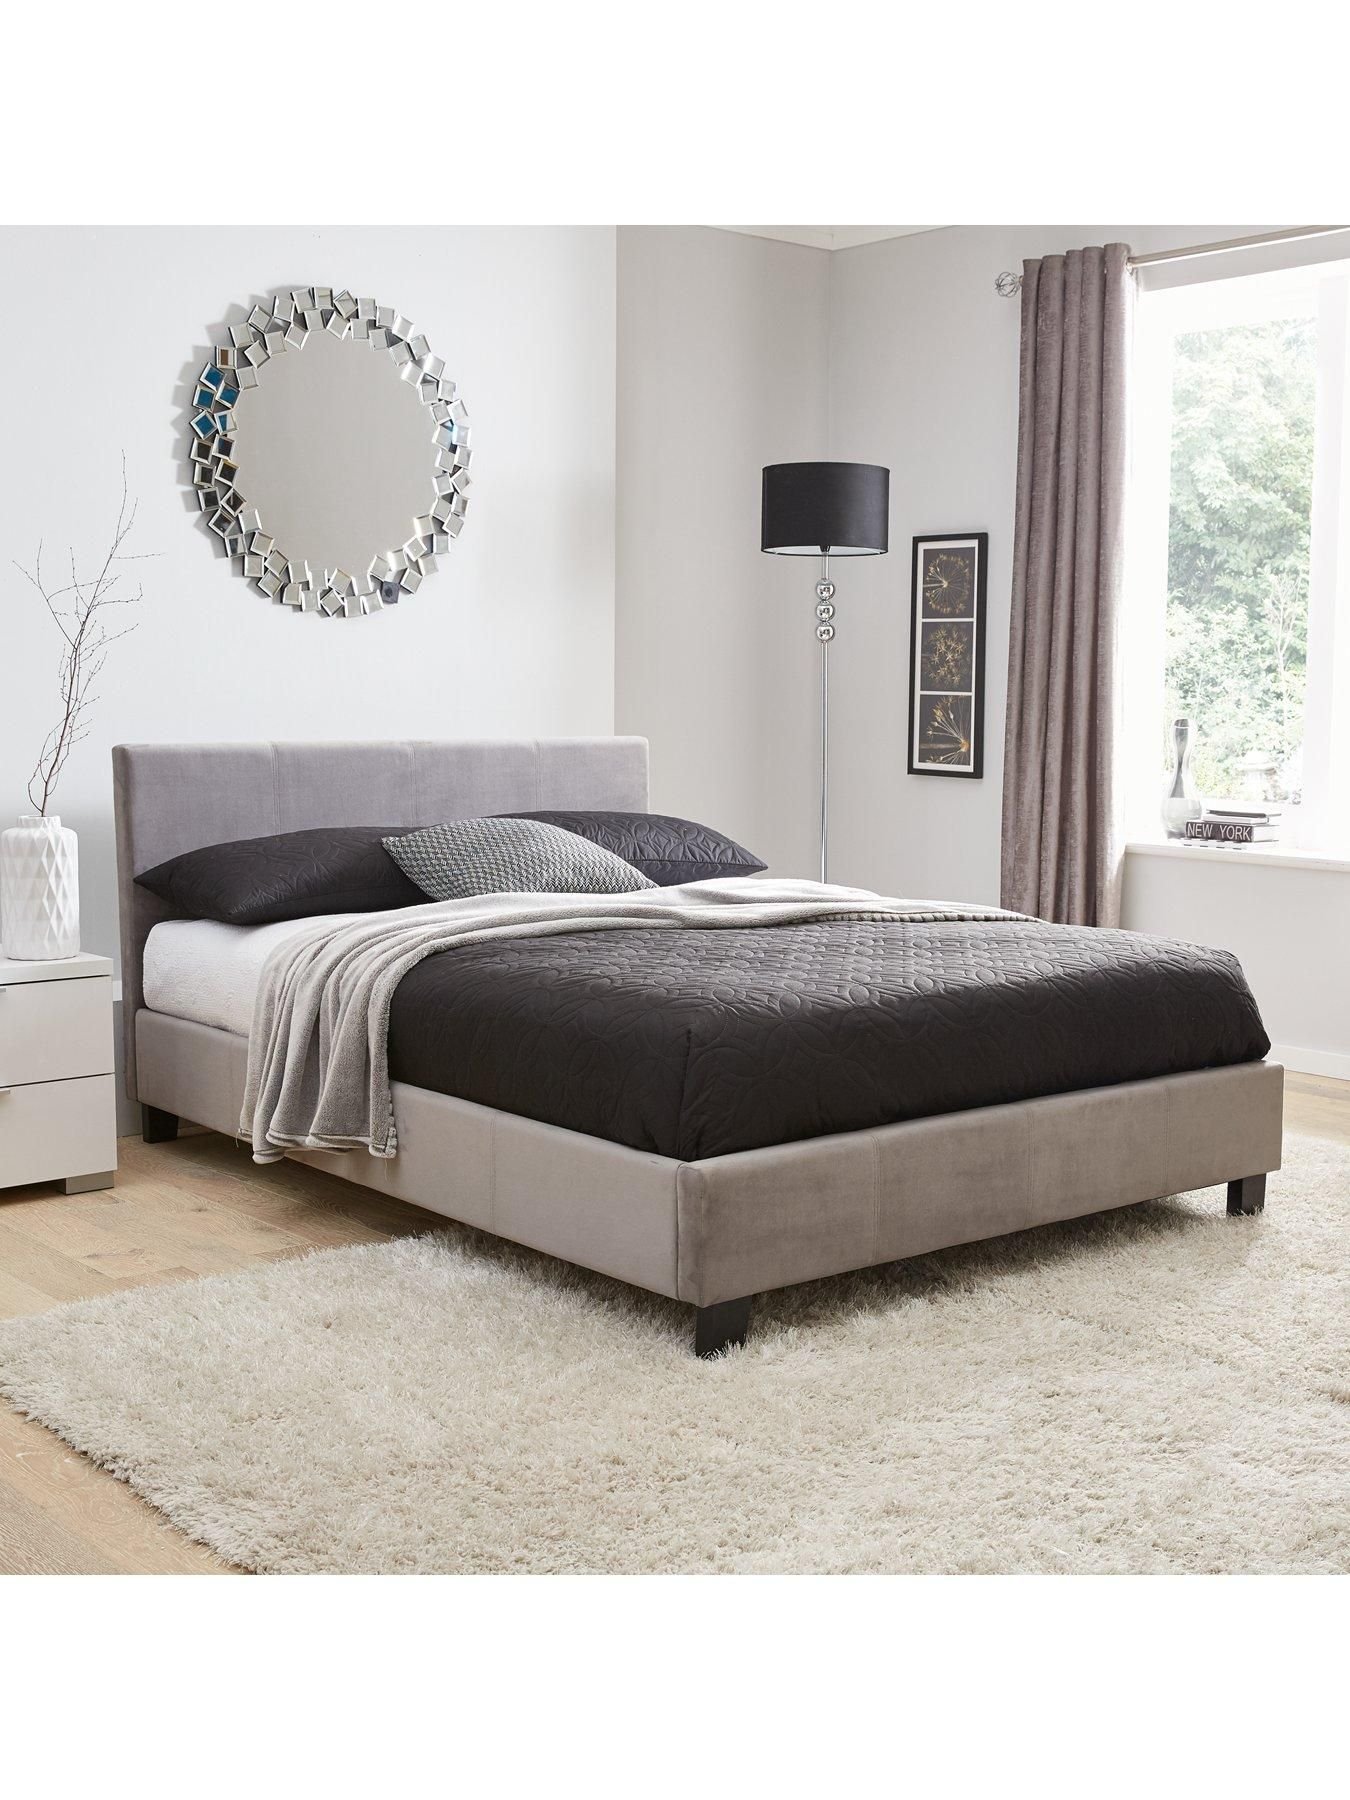 Christie Fabric Bed Frame With Mattress Options Buy And Save